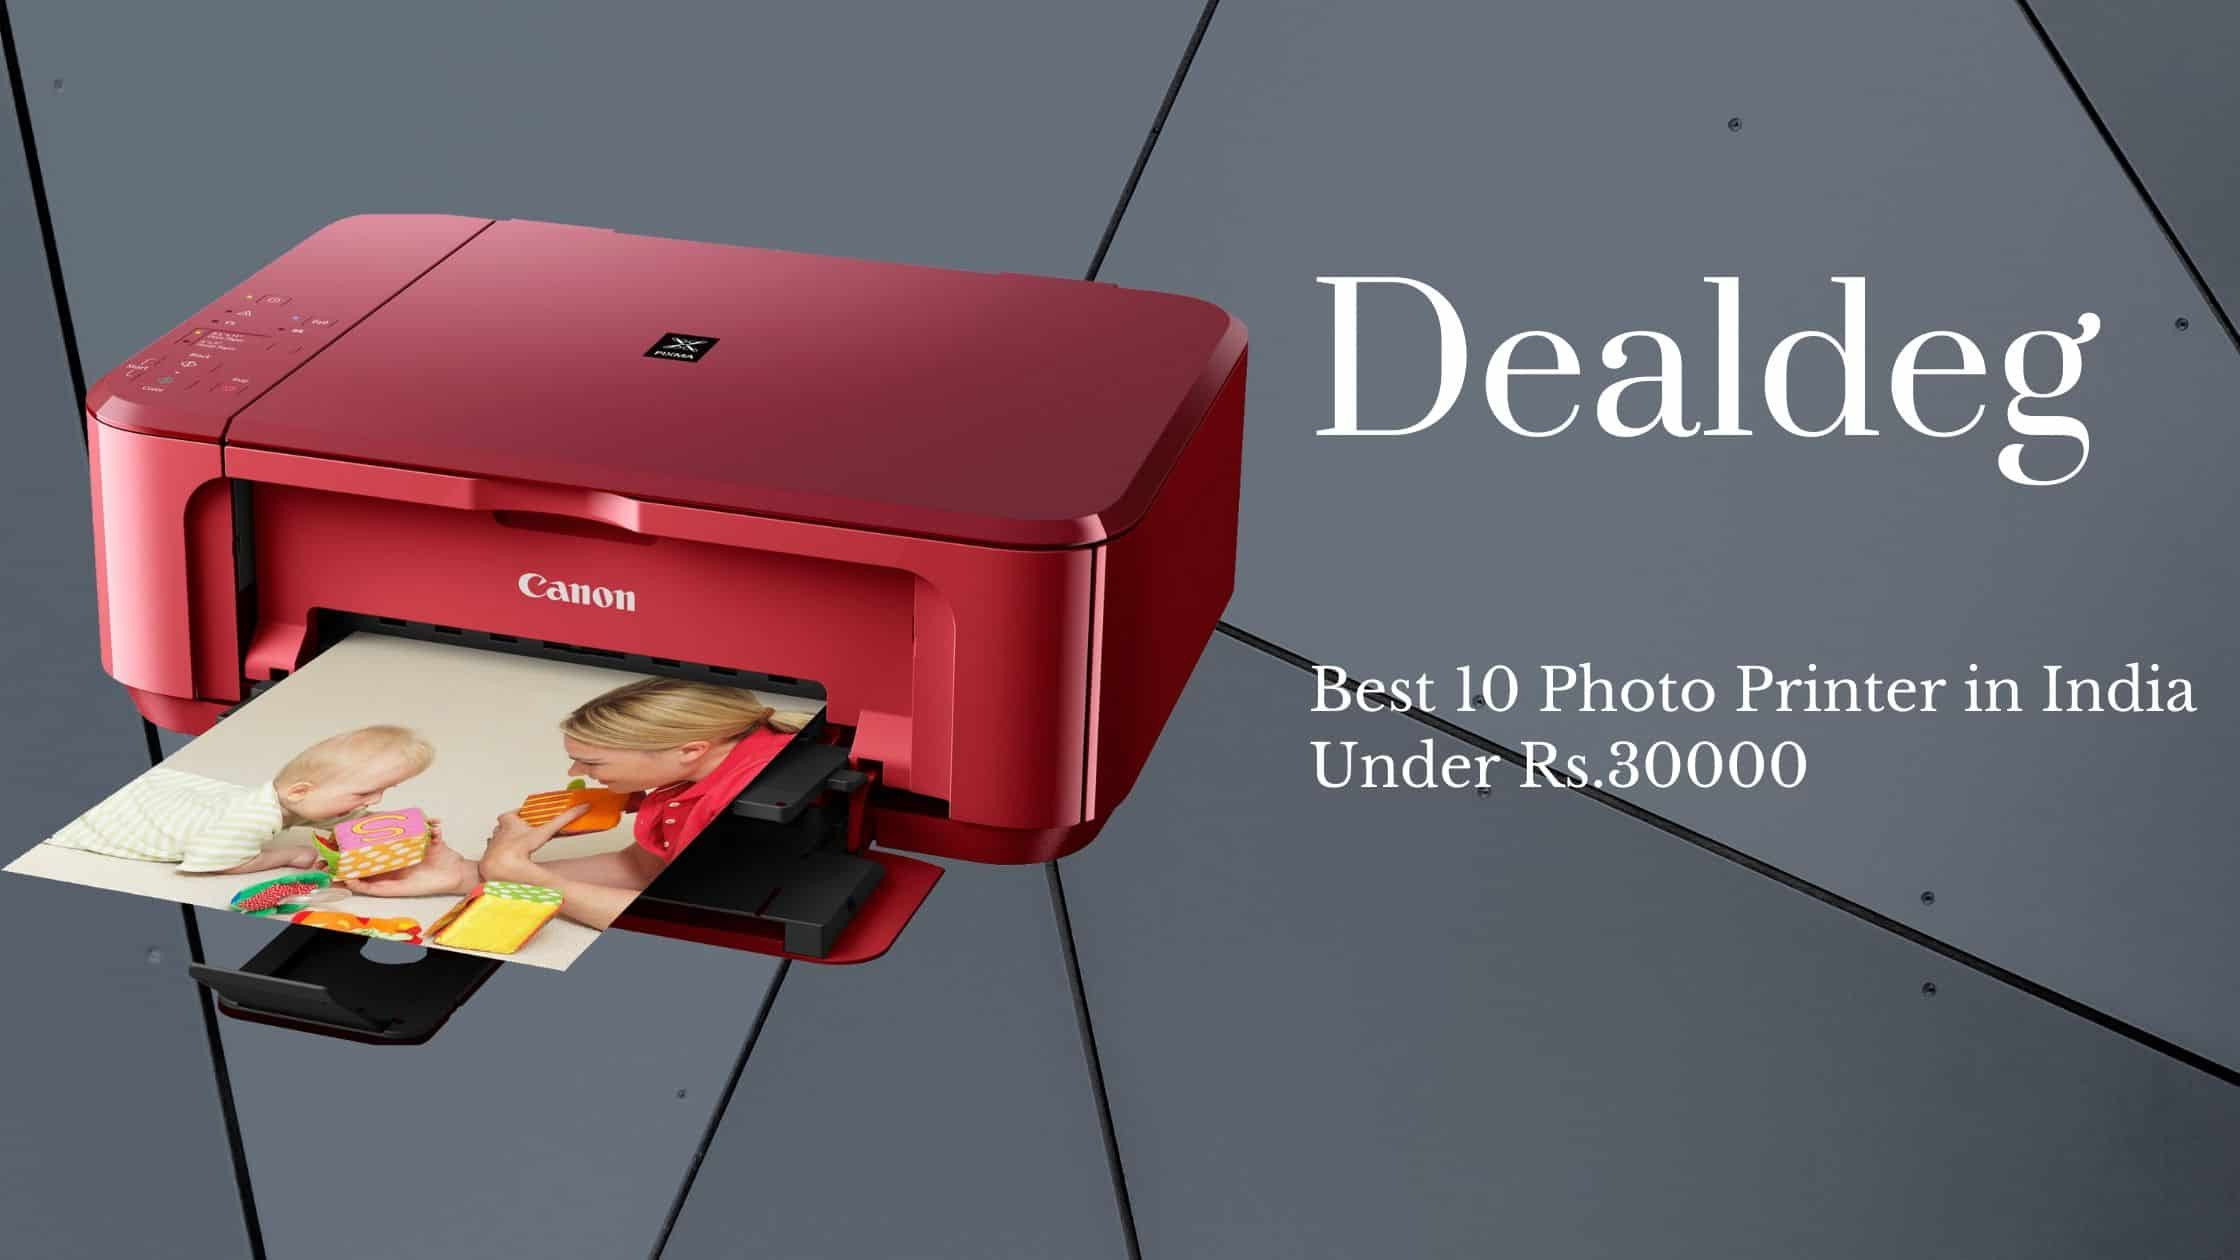 Best 10 Photo Printer Rs.30000.